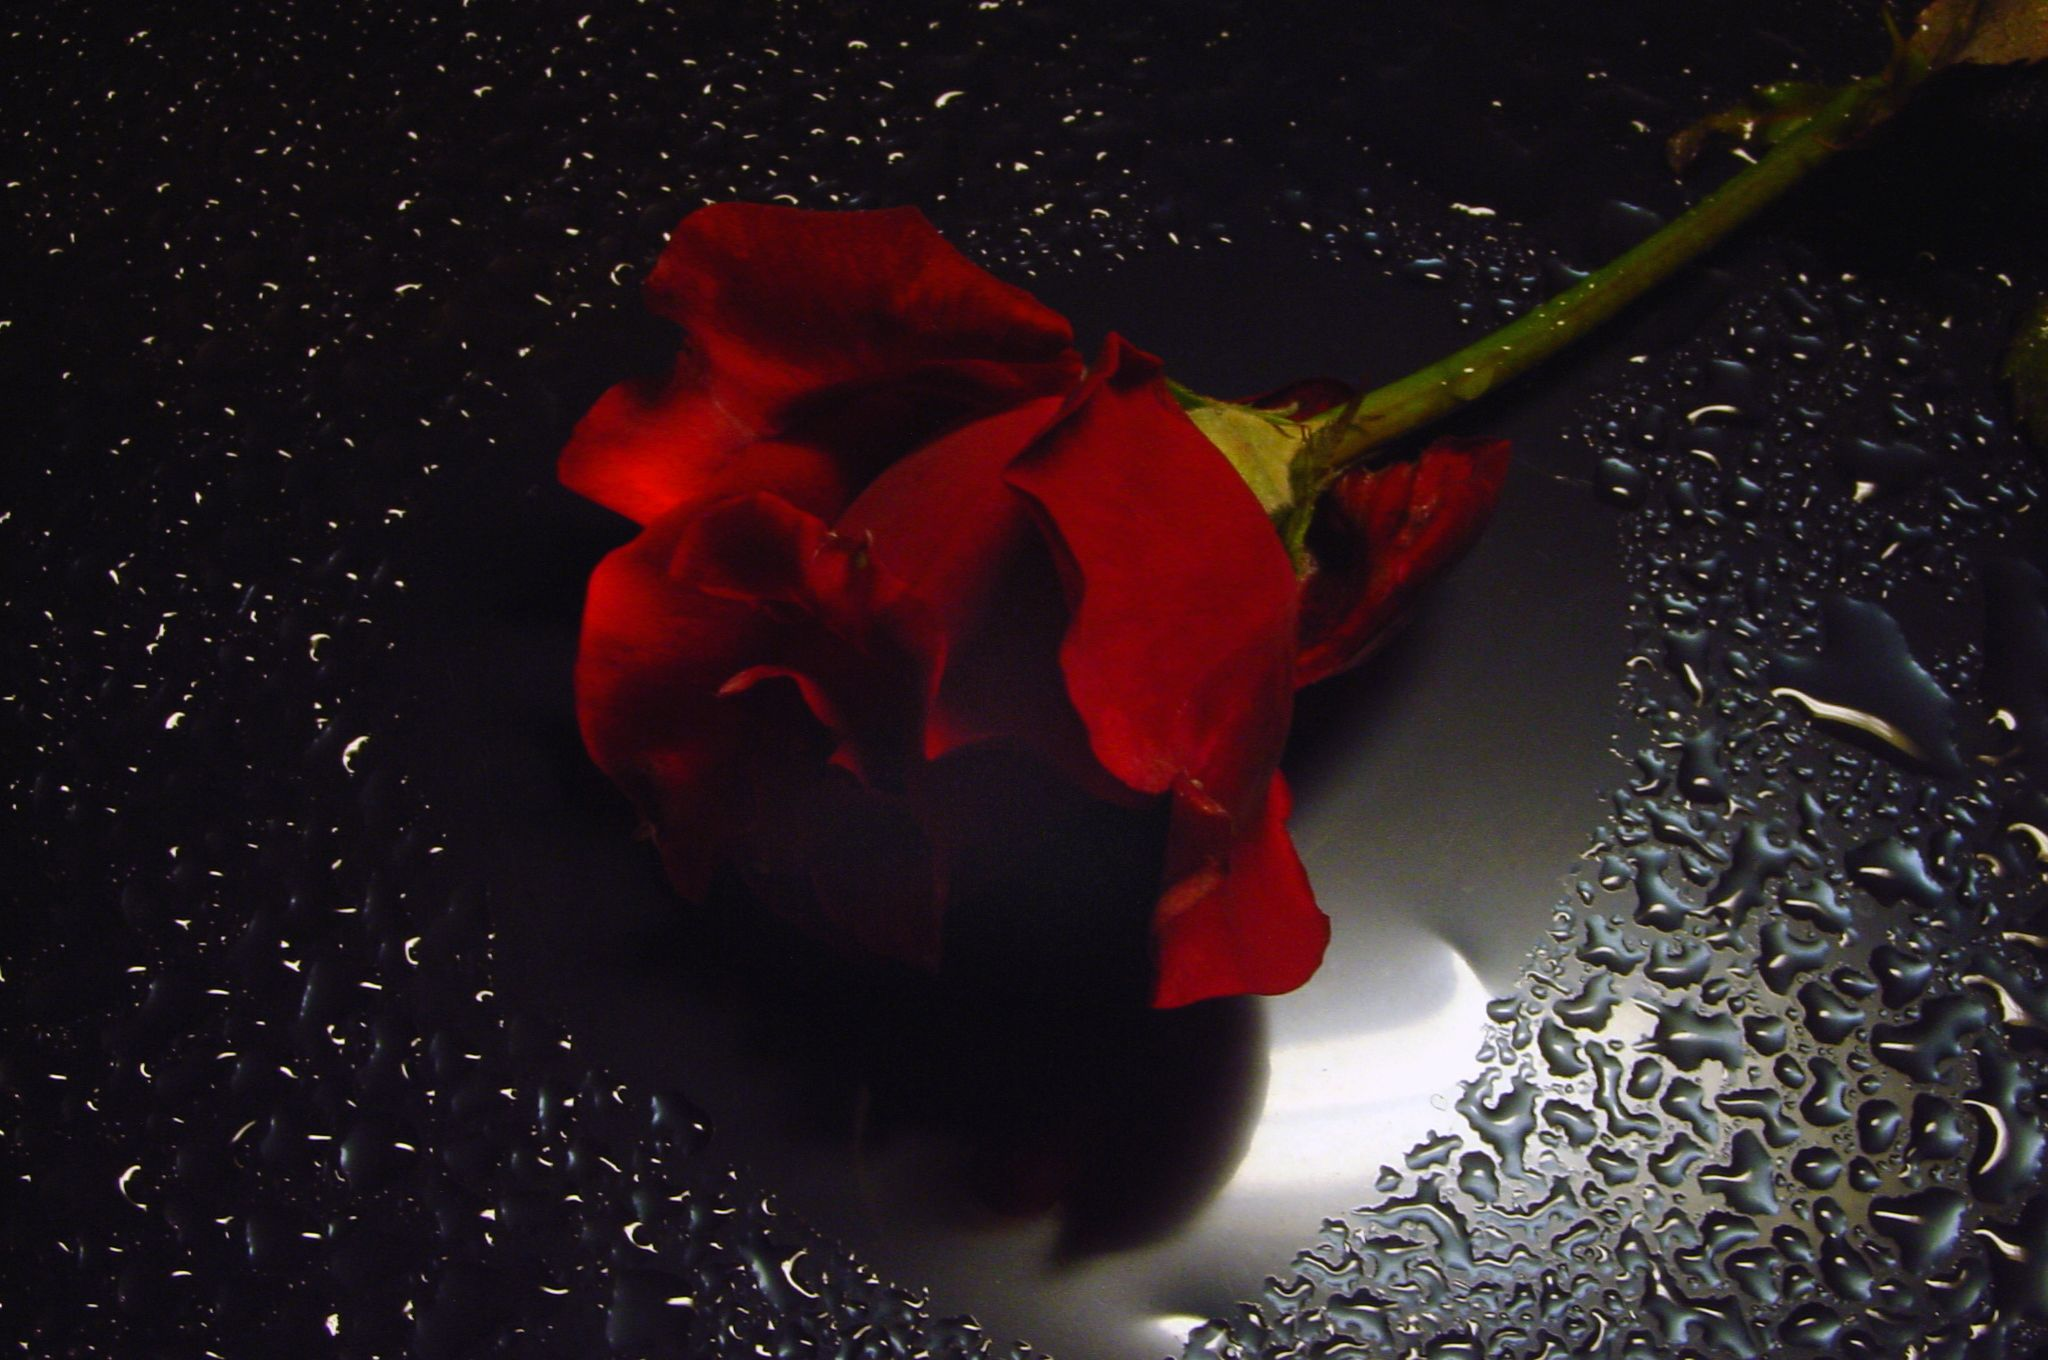 Awesome Fabulous Red Rose Water Drops Red Roses Flowers Black Background Black And Red Roses